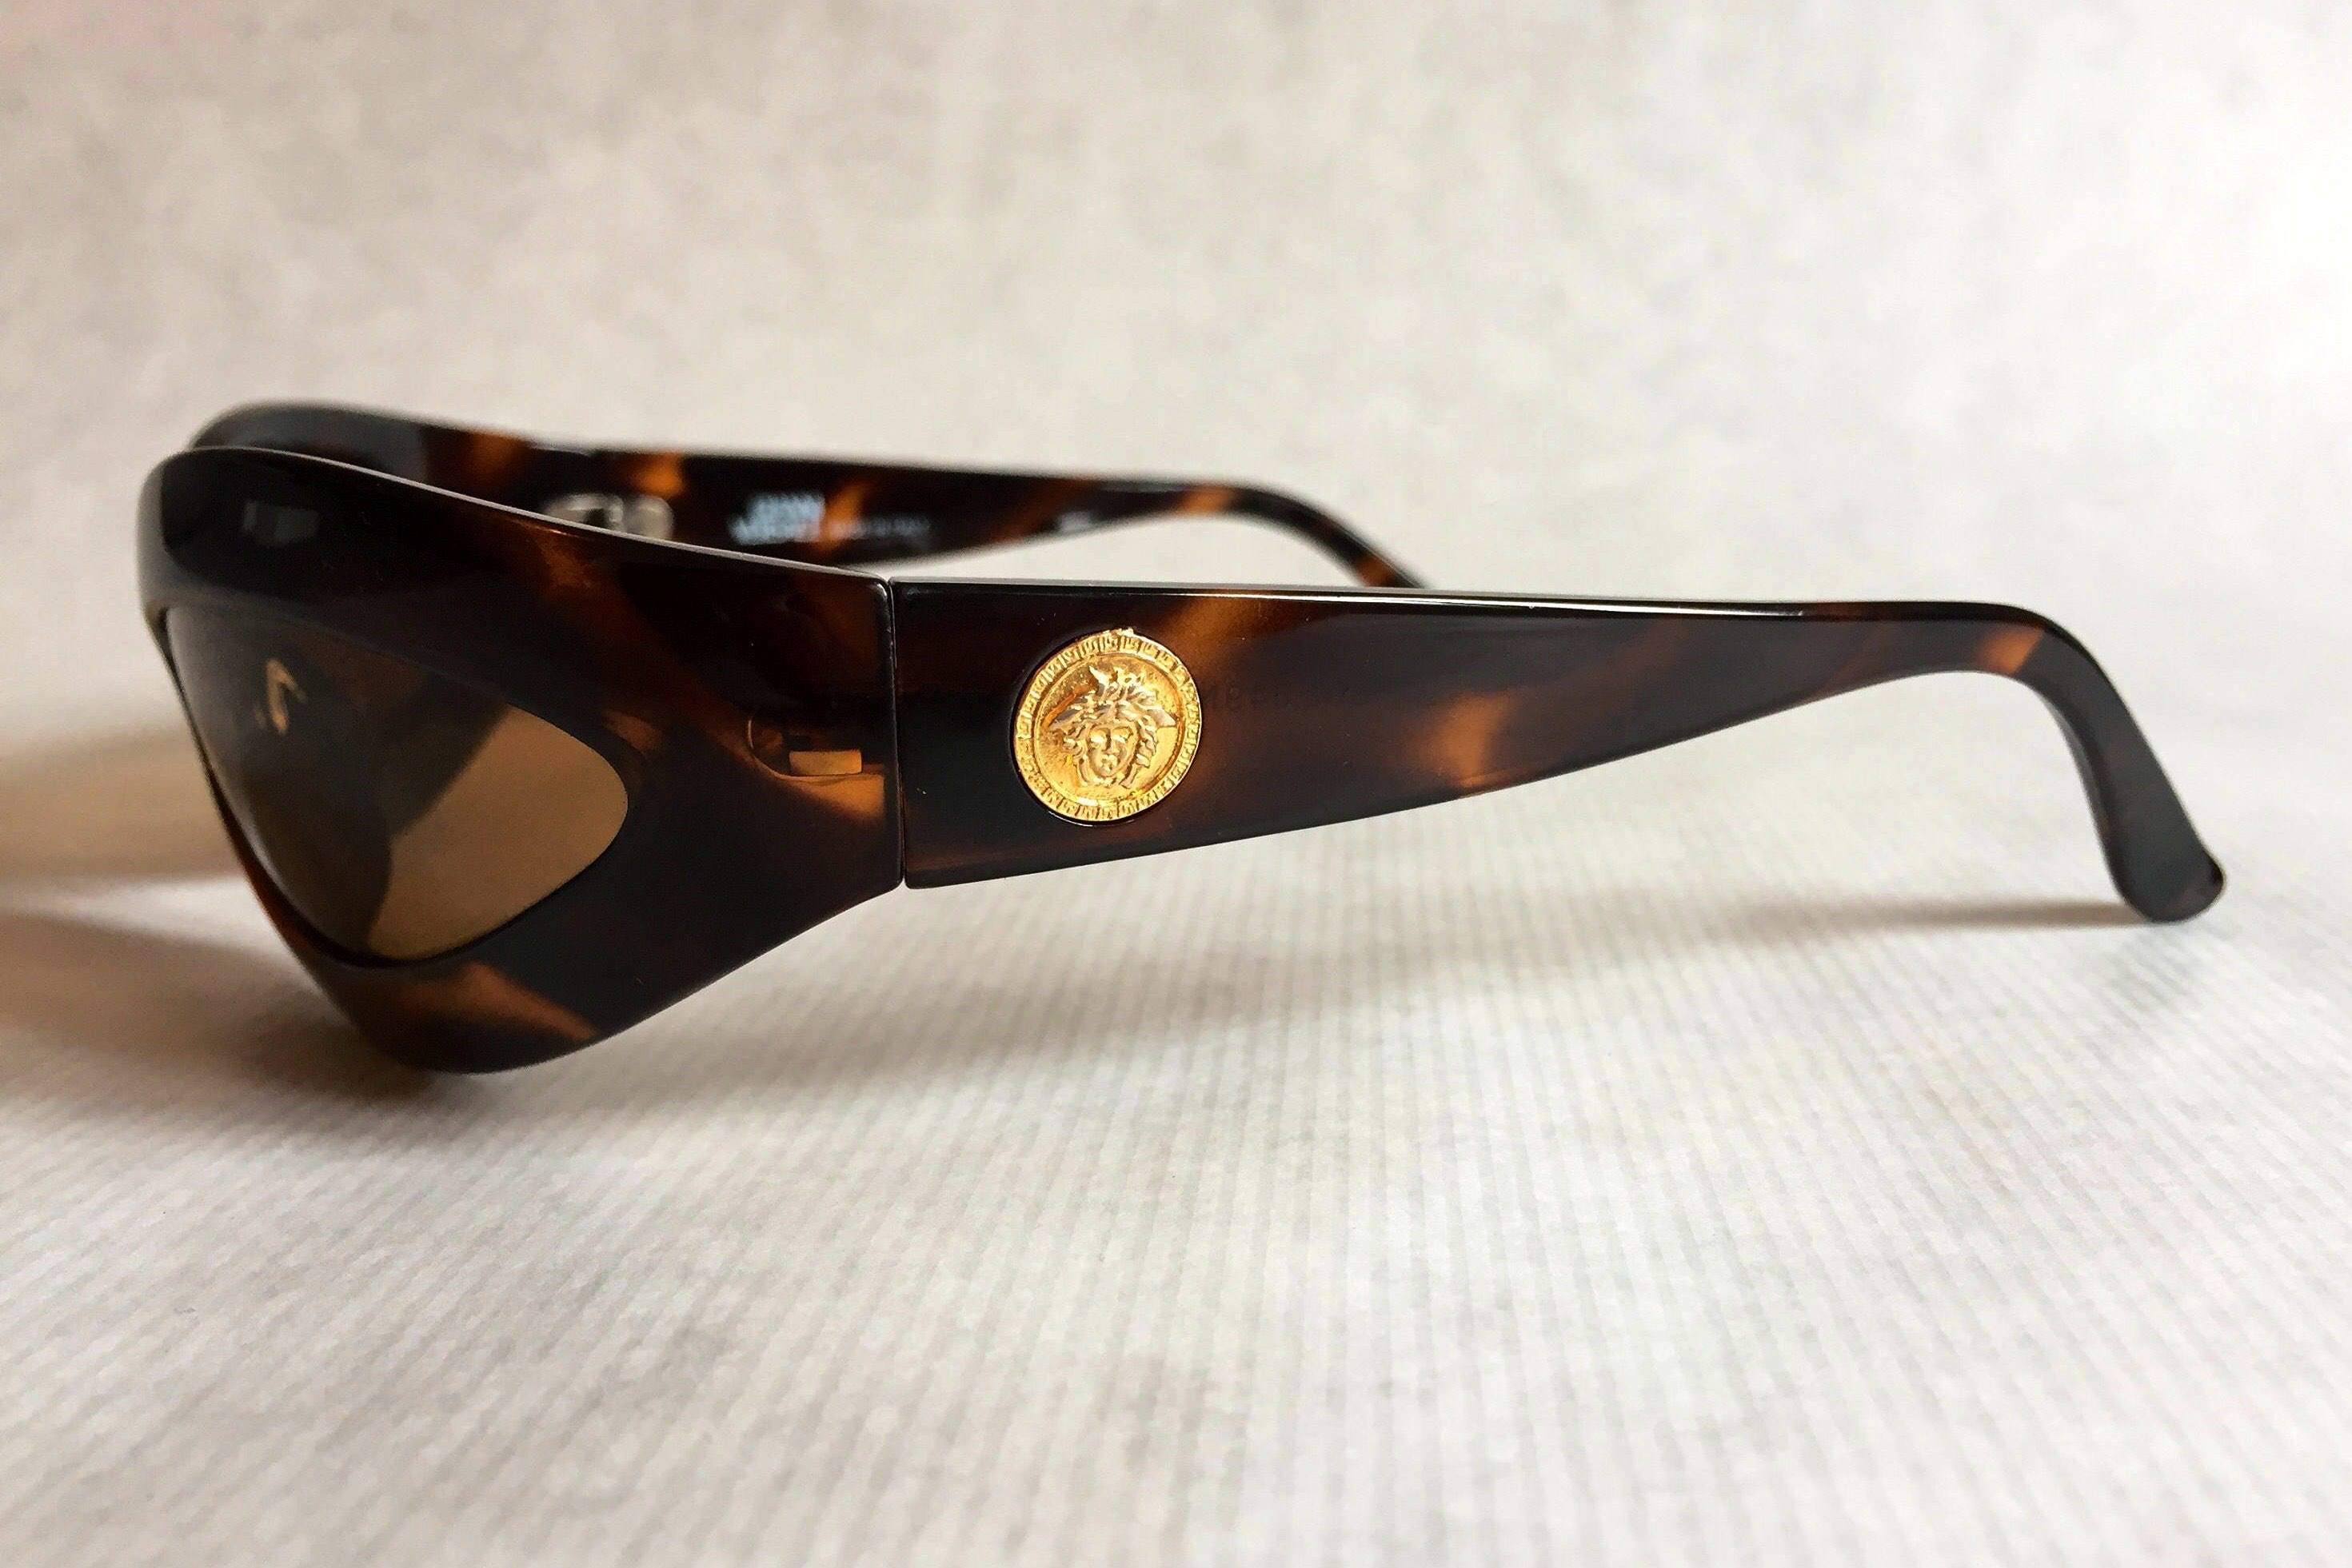 eb254562aa448 Gianni Versace 440 Mask Vintage Sunglasses New Never Worn including Original  Softcase. gallery photo gallery photo gallery photo gallery photo gallery  photo